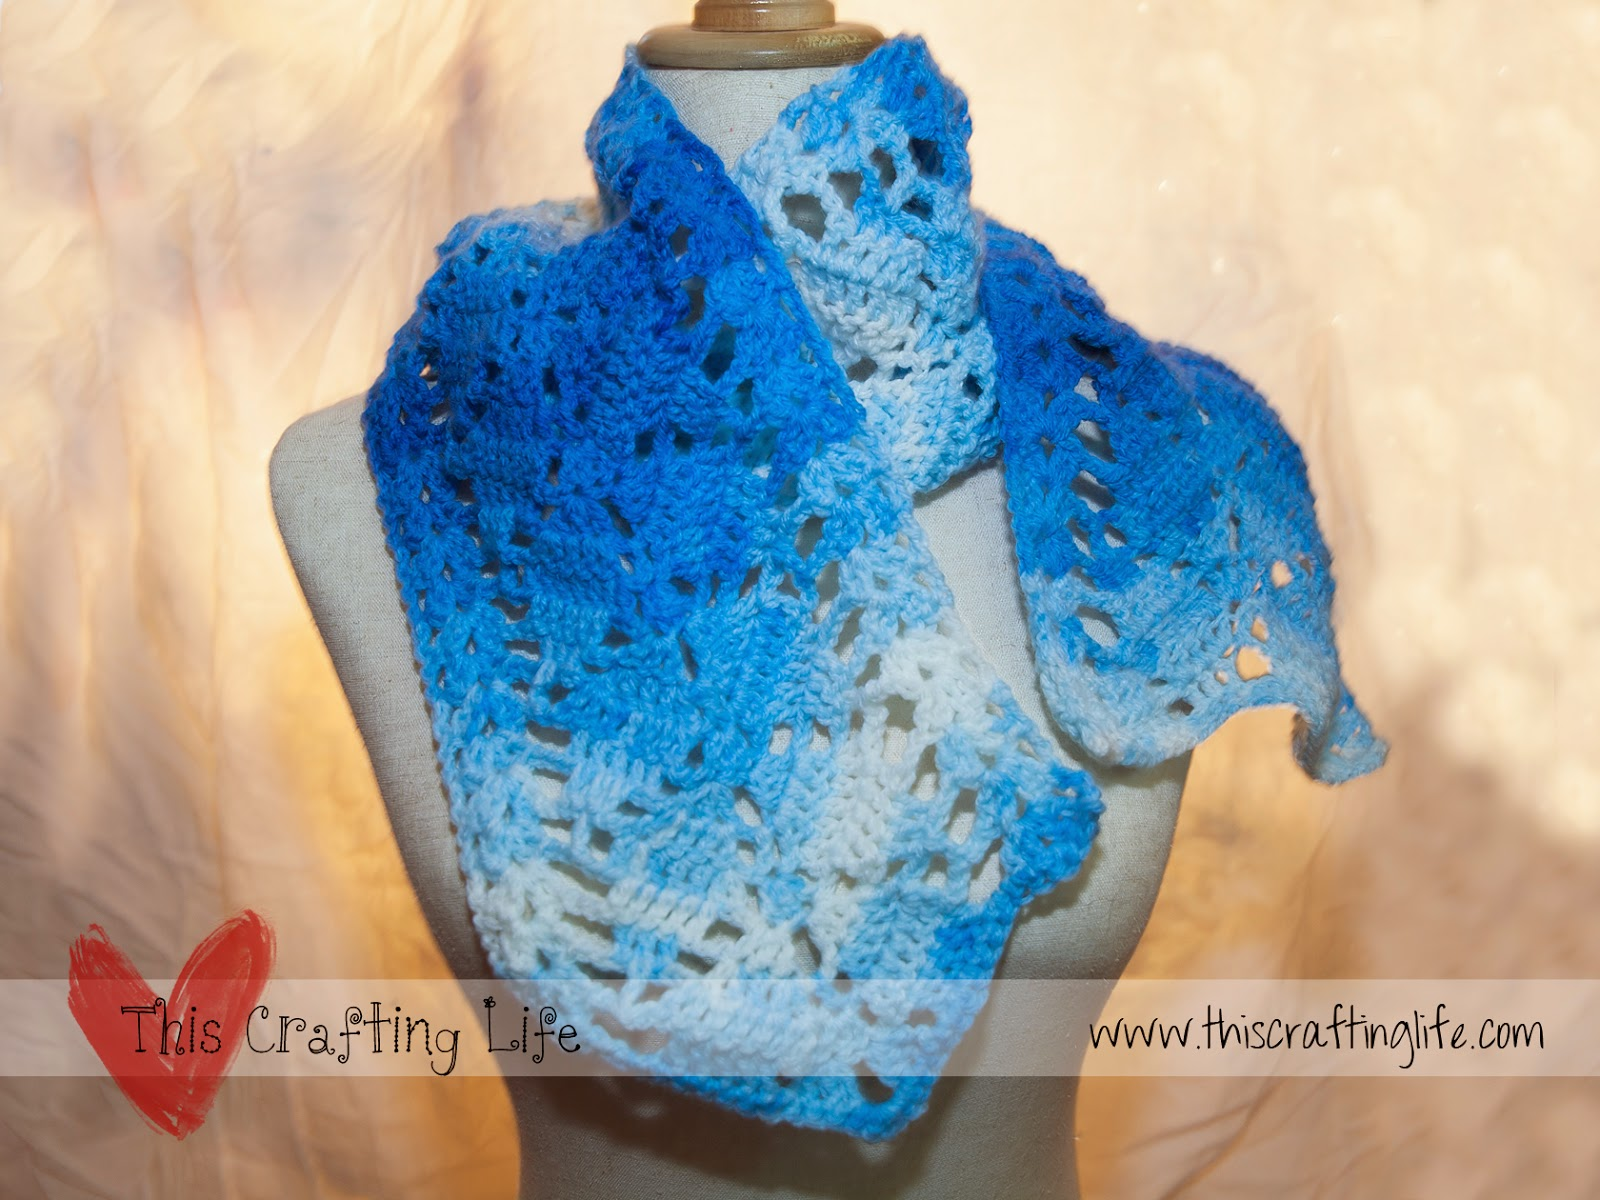 Crochet Scarf Pattern Leaf : This Crafting Life: Beautiful Leaves Crochet Scarf ...